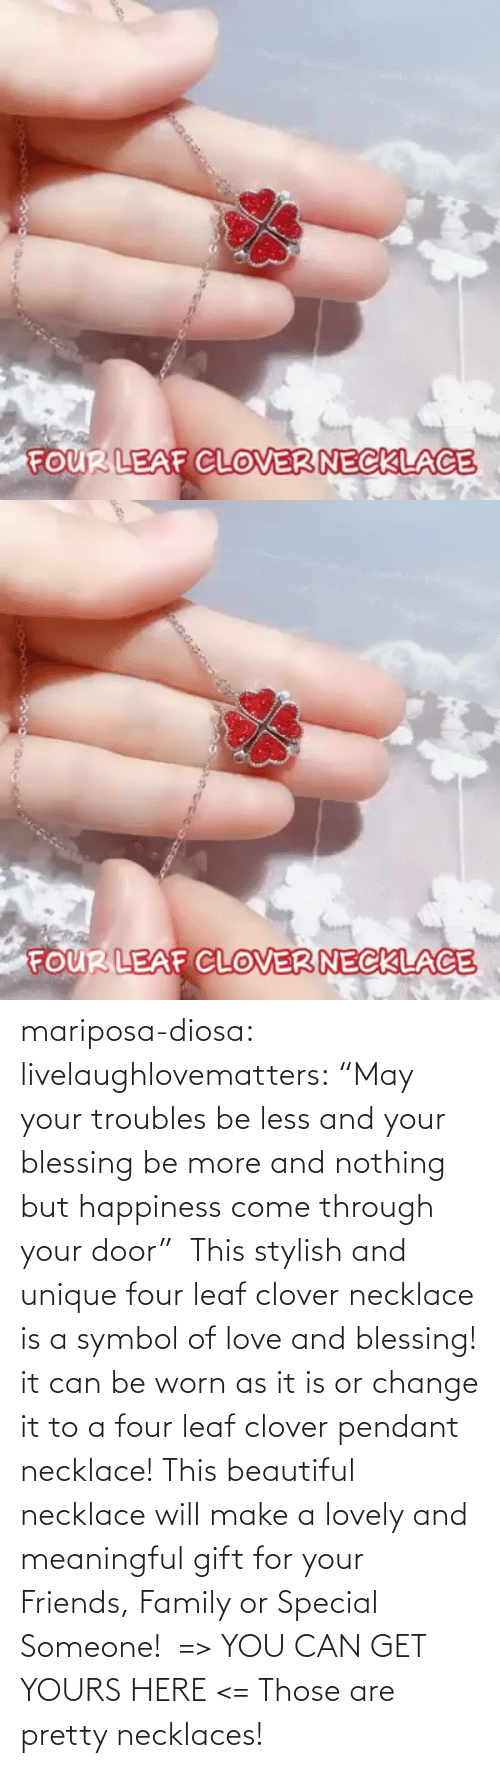 "yours: mariposa-diosa: livelaughlovematters:  ""May your troubles be less and your blessing be more and nothing but happiness come through your door""  This stylish and unique four leaf clover necklace is a symbol of love and blessing! it can be worn as it is or change it to a four leaf clover pendant necklace! This beautiful necklace will make a lovely and meaningful gift for your Friends, Family or Special Someone!  => YOU CAN GET YOURS HERE <=    Those are pretty necklaces!"